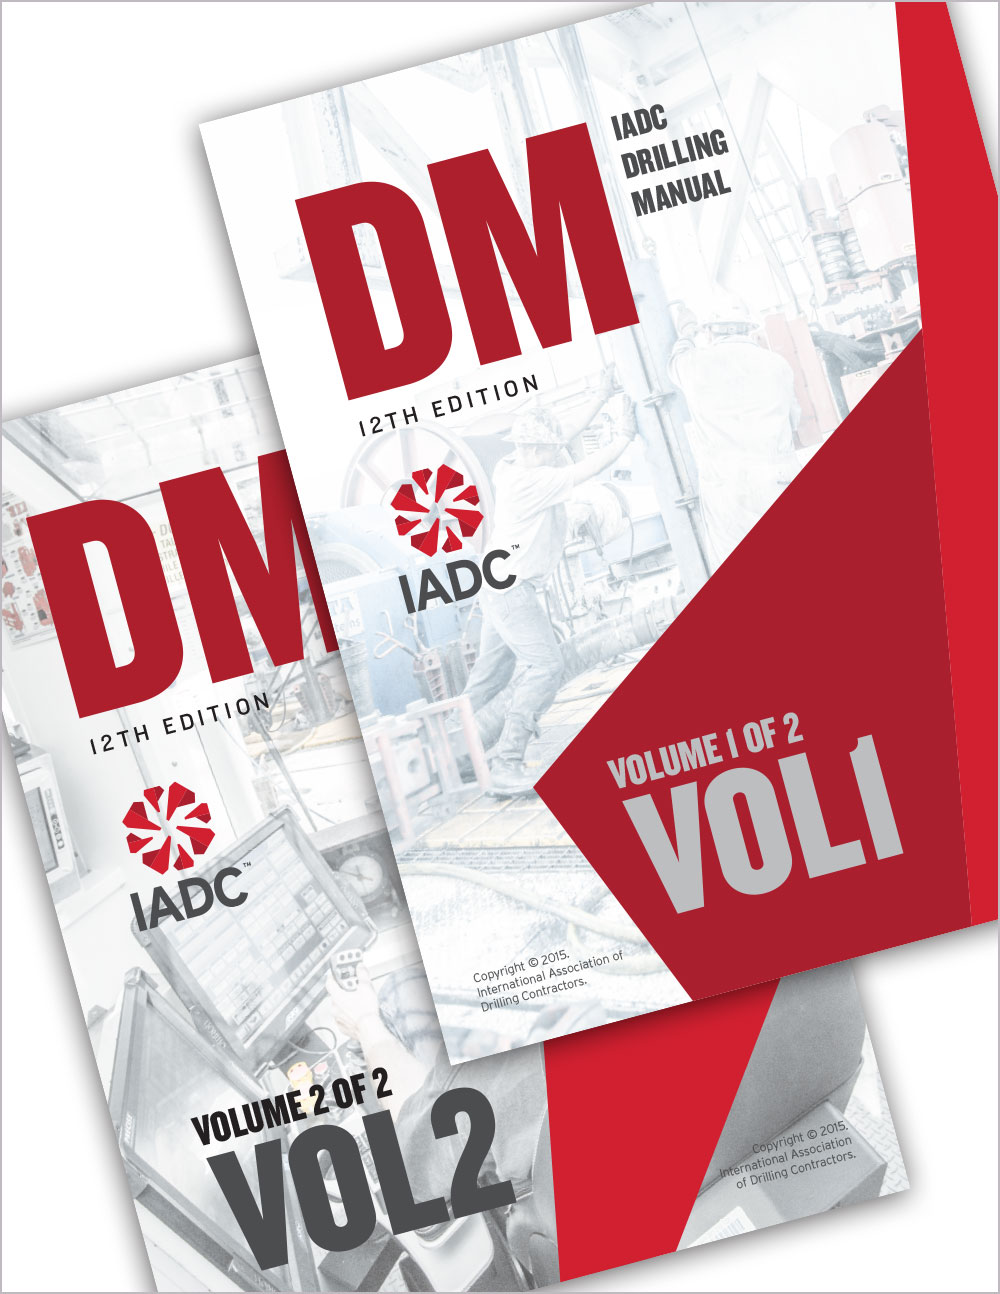 ebook the iadc drilling manual 12th edition complete iadc rh iadc org Process Control Manual Water Well Caps